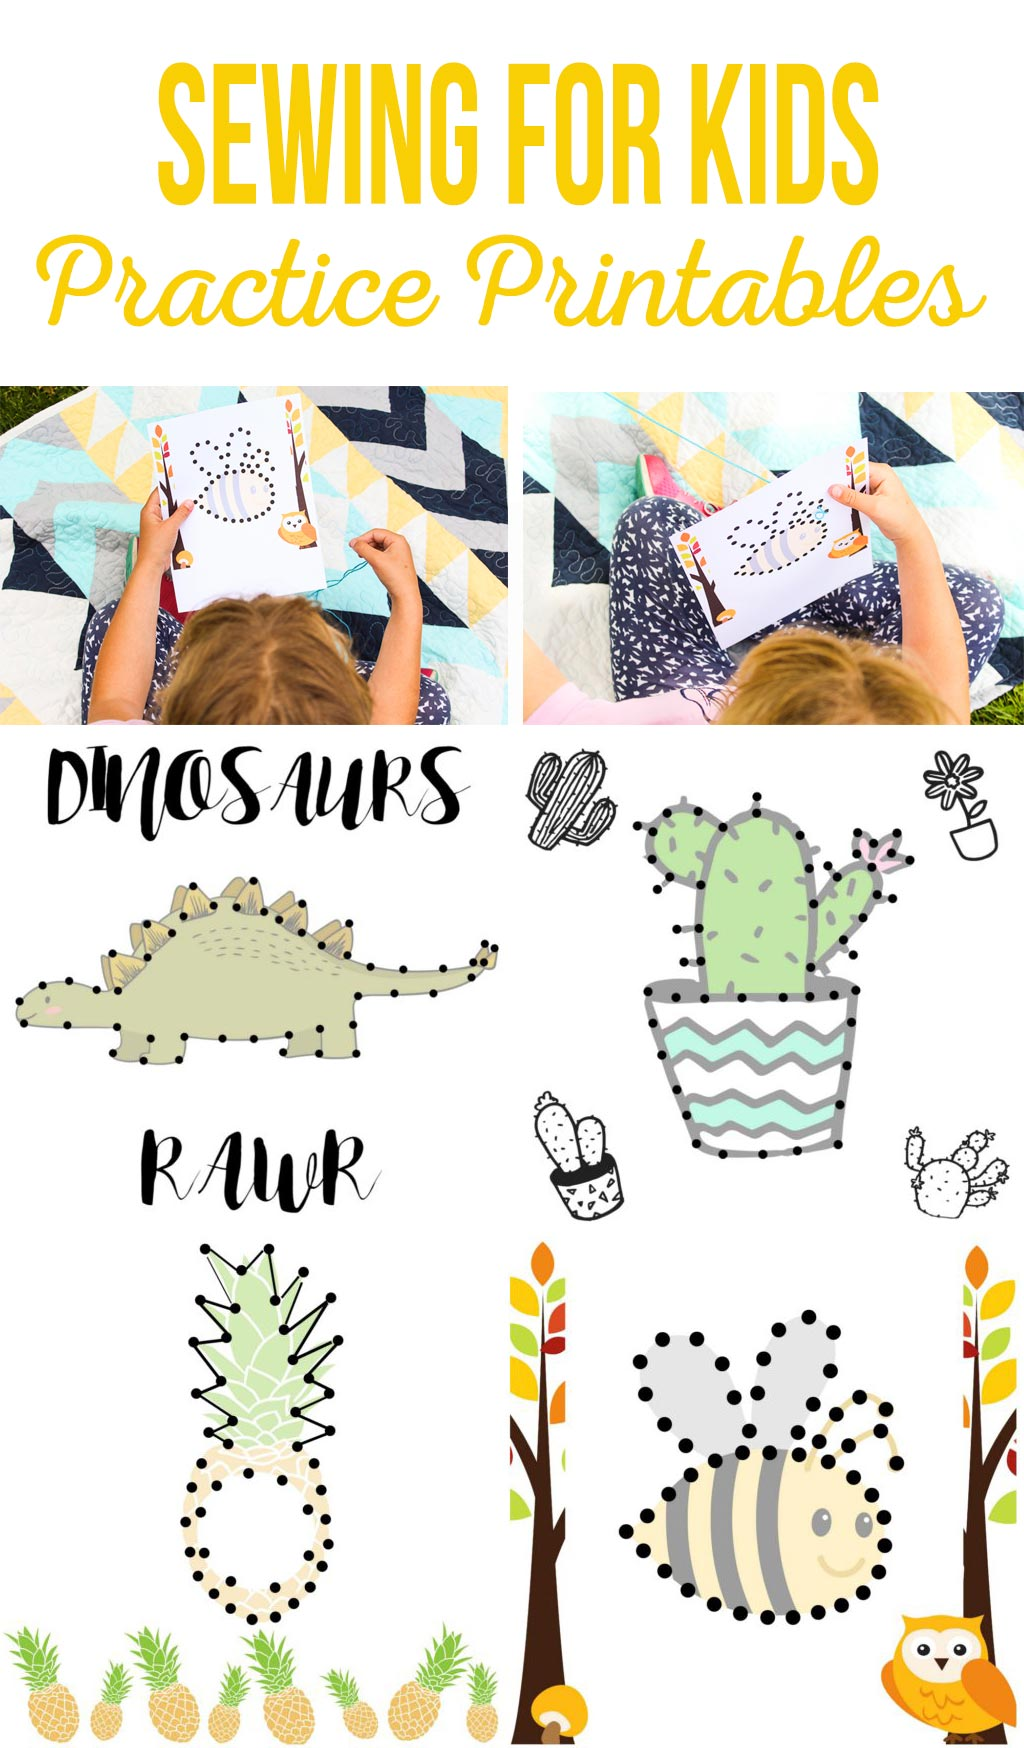 Sewing for Kids Practice Printables | A fun, simple kids activity that teaches coordination and sewing skills.